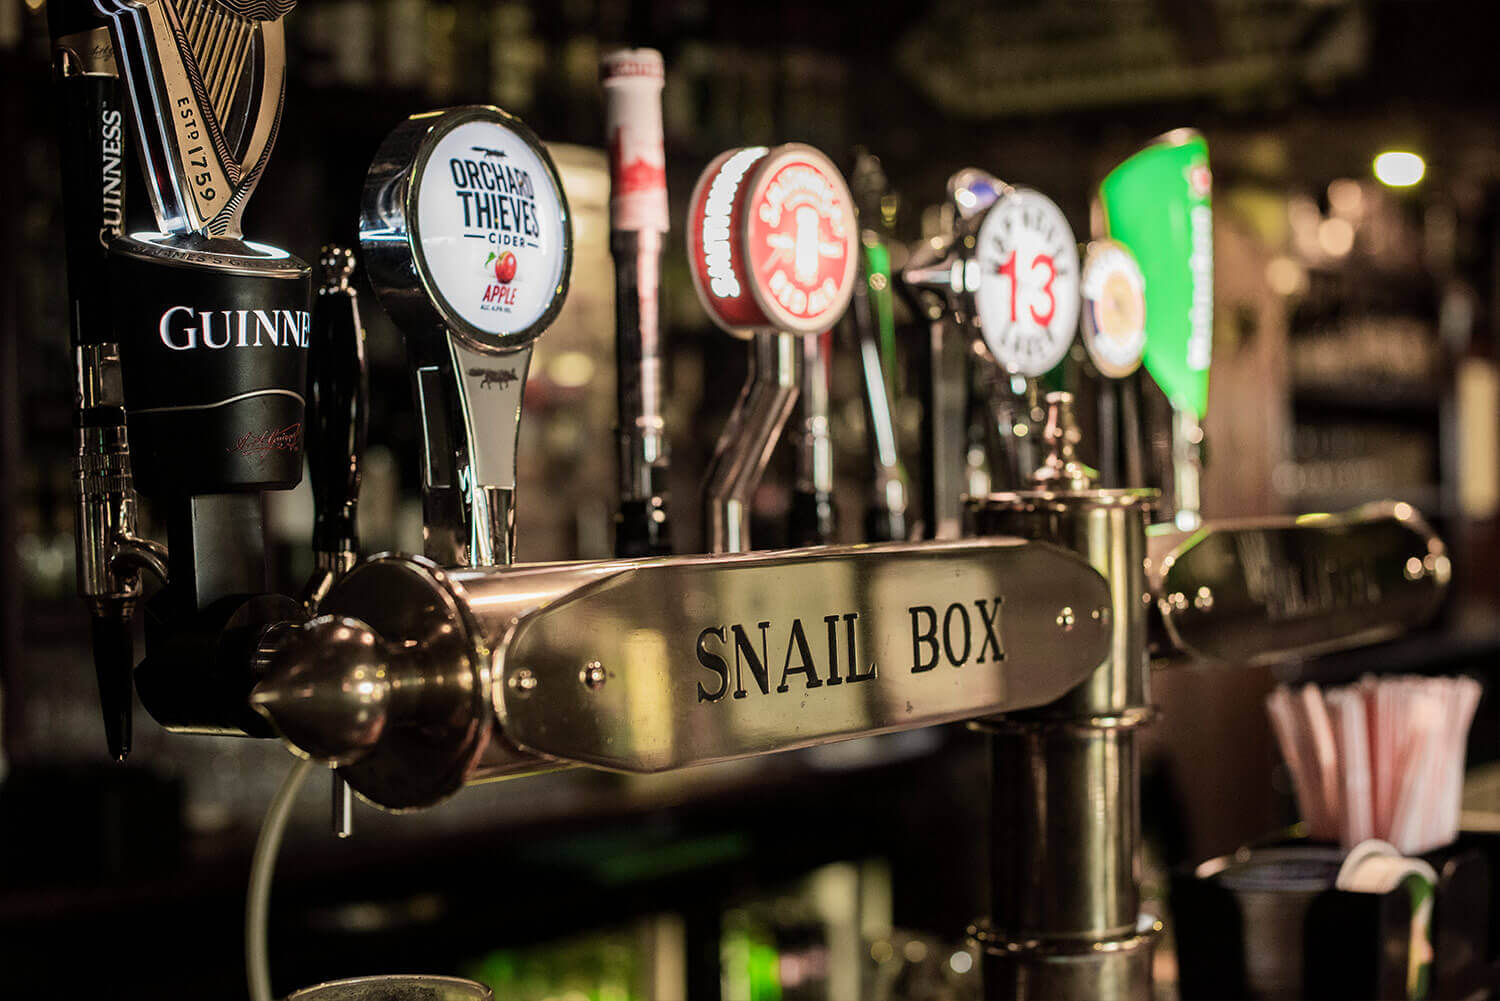 The Snailbox - Bar, Food, Accommodation & Meeting Facilities